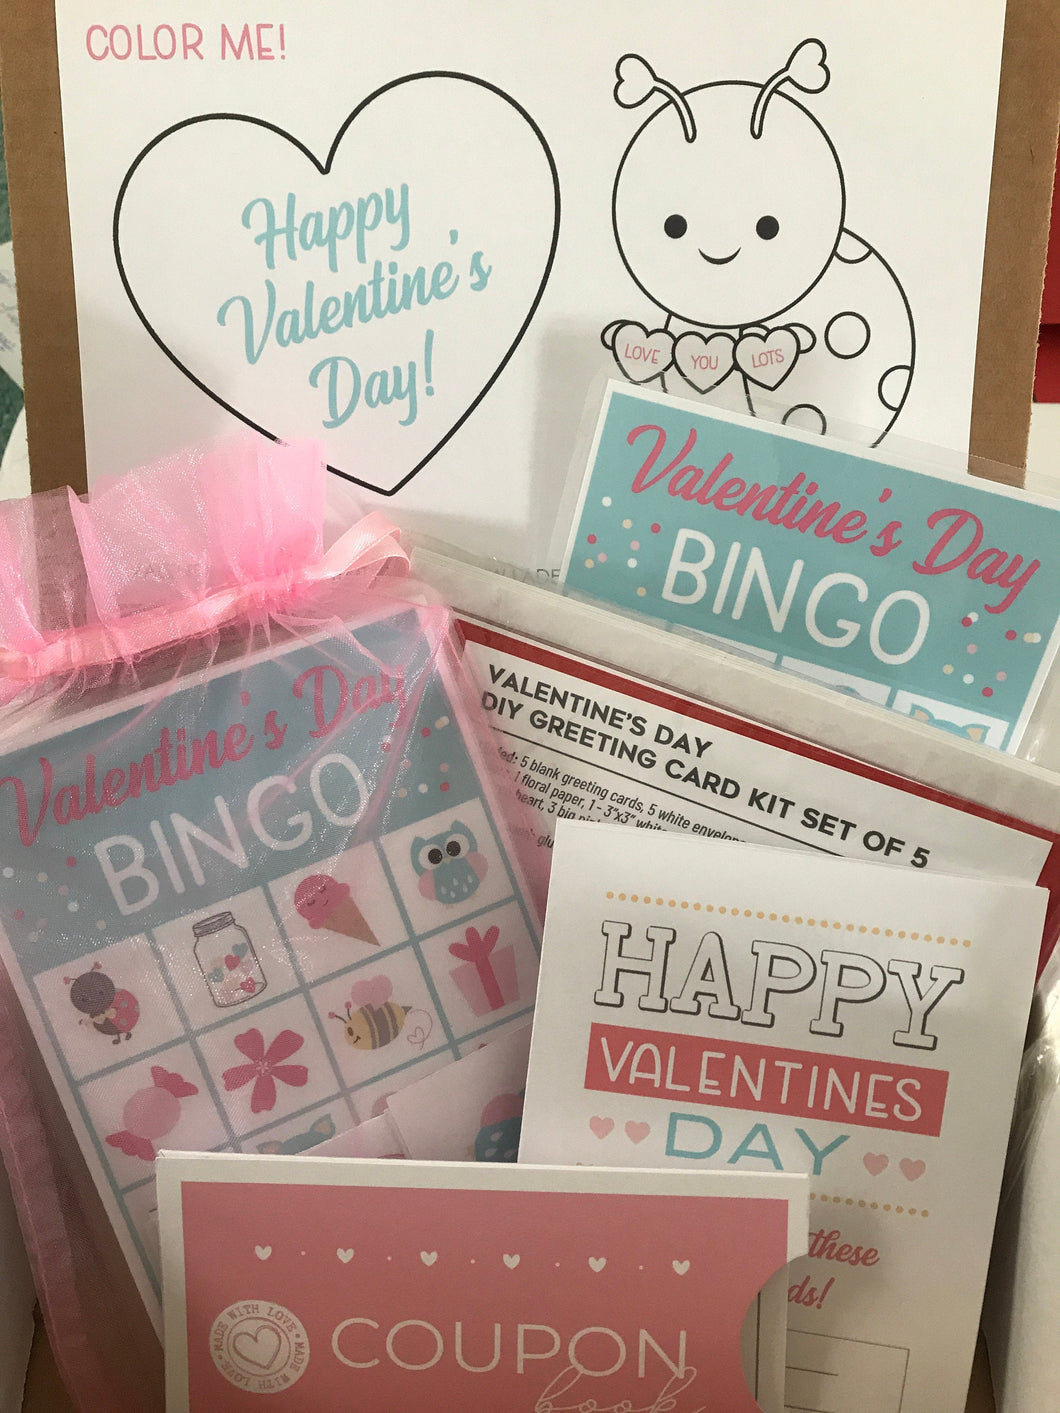 Valentines Day Kids Gifts, Valentines Day Kit, Valentines Day Kit for Kids, Greeting Card Kits, Bingo Game, Coupon Book, Gift for Kids